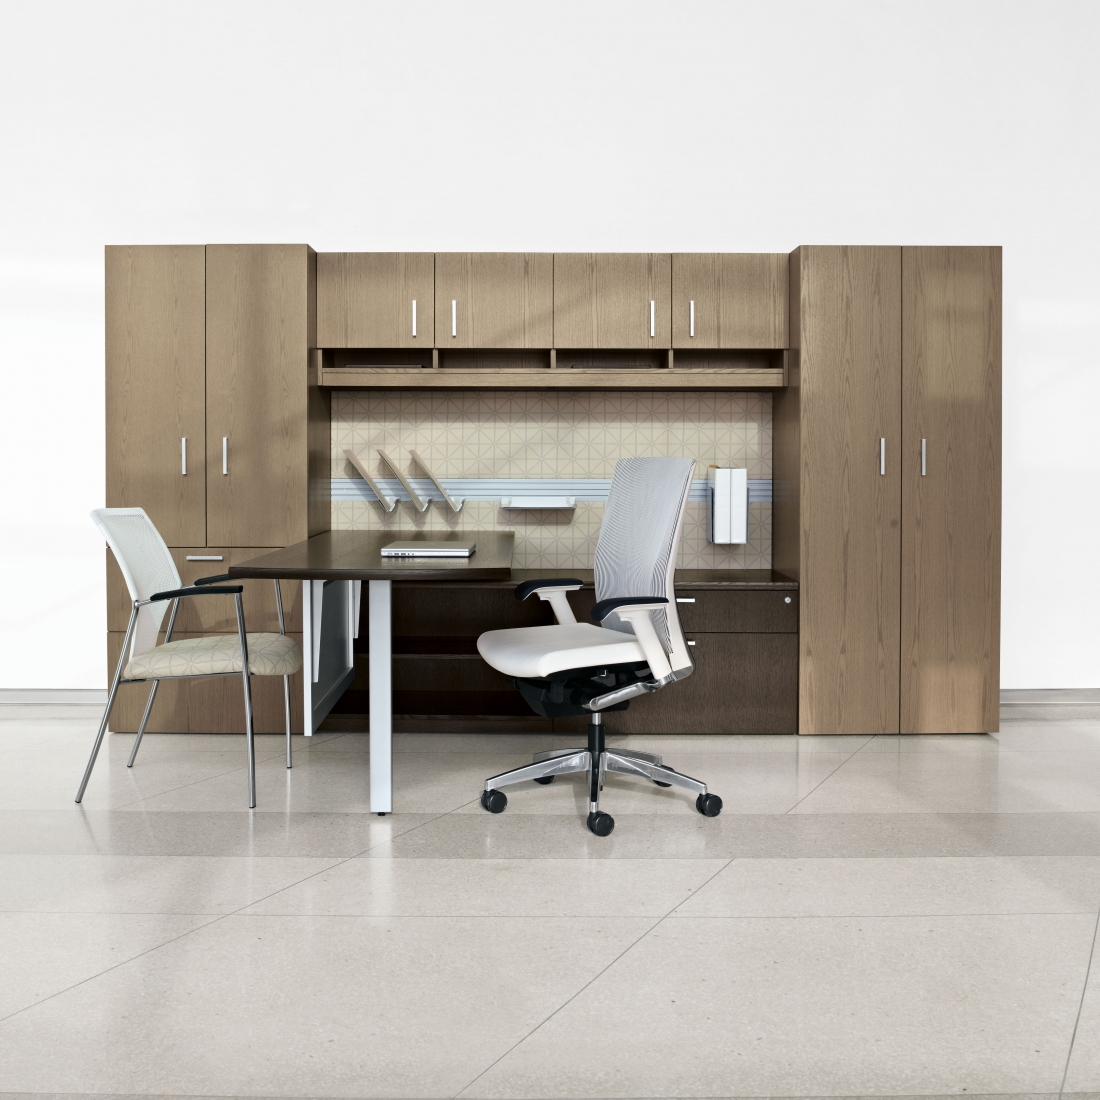 The Office Furniture Blog At OfficeAnything.com: Keep It